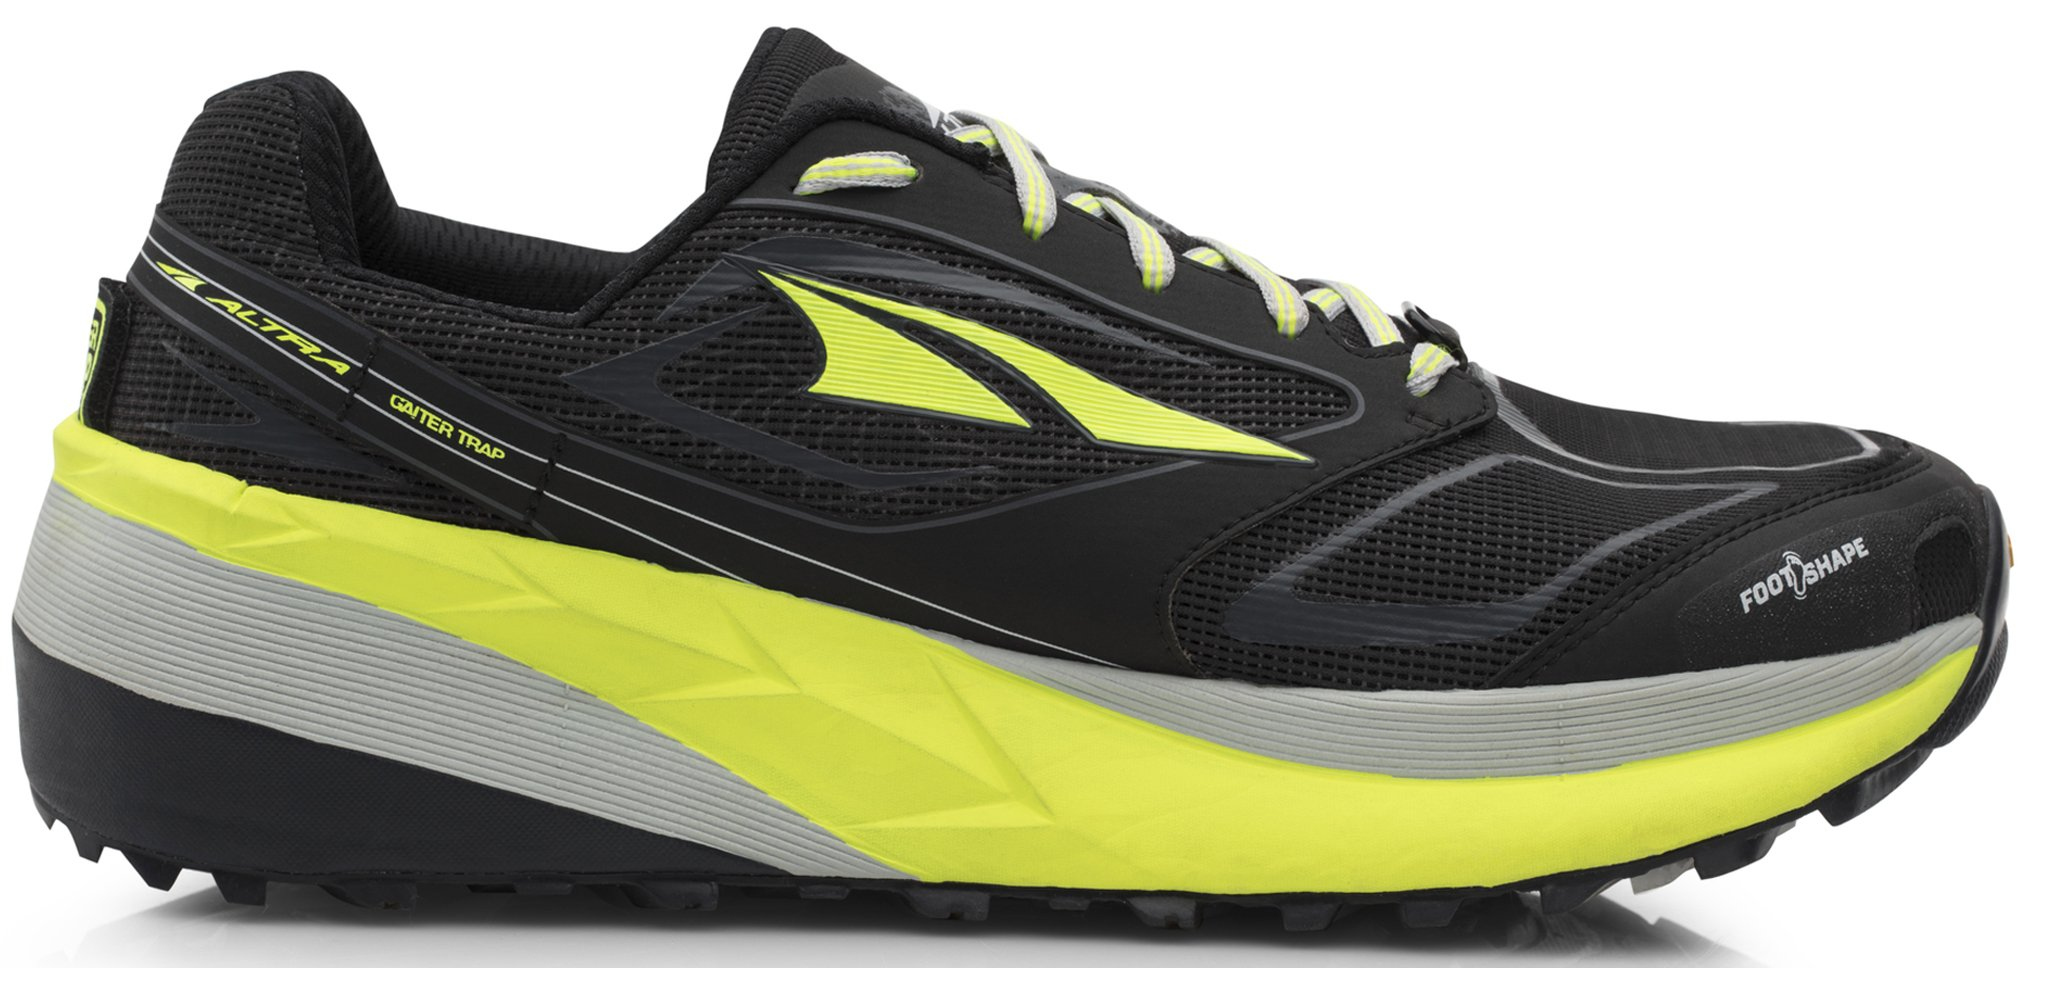 Altra AFM1859F Men's Olympus 3 Running Shoe, Black/Yellow - 10.5 D(M) US by Altra (Image #1)